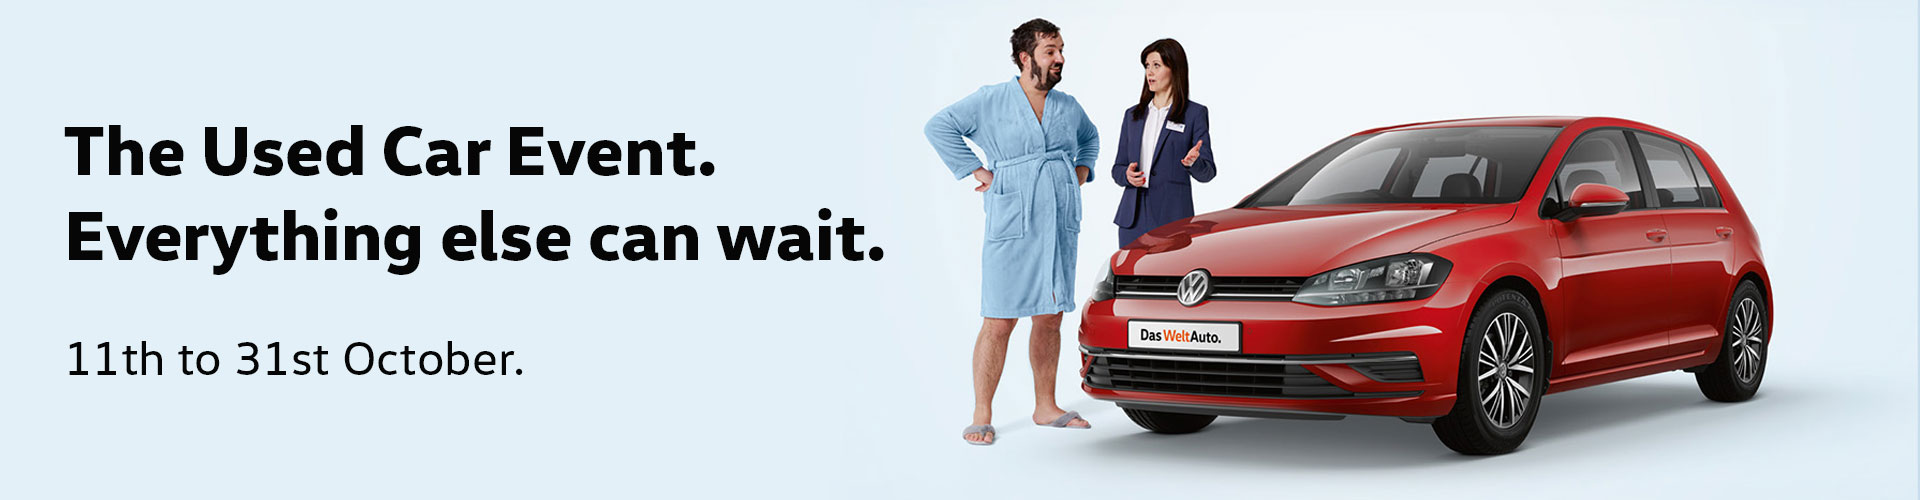 VW Used Car Event: 11th October to 31st October.